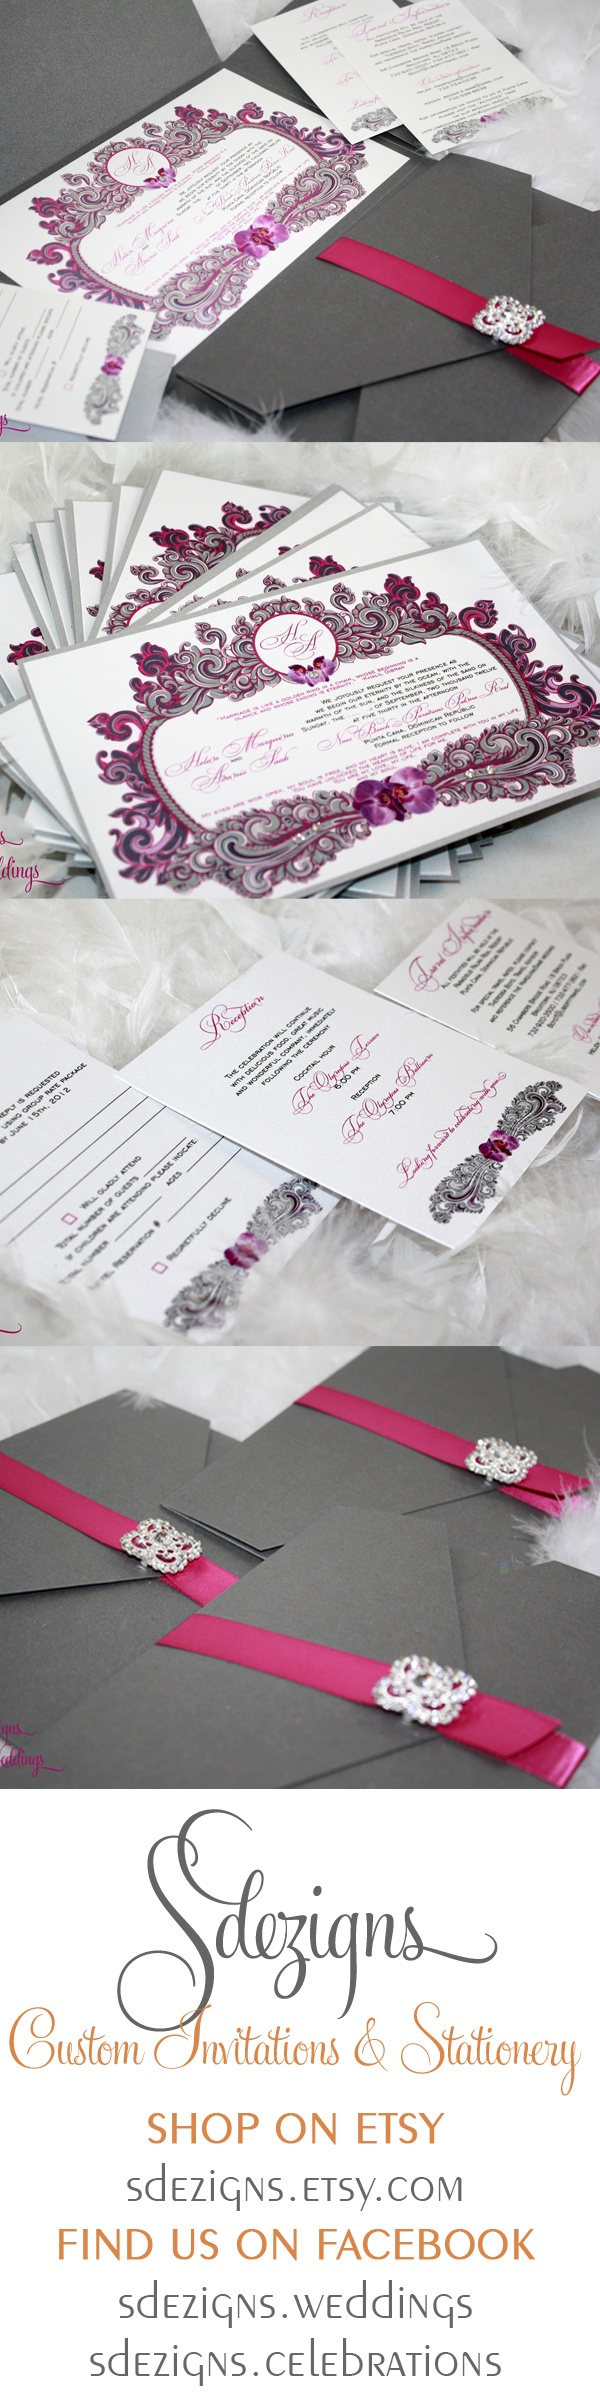 Beautiful swirls and orchids make up this vintage feel design by SDezigns.  #wedding #invitation #nj